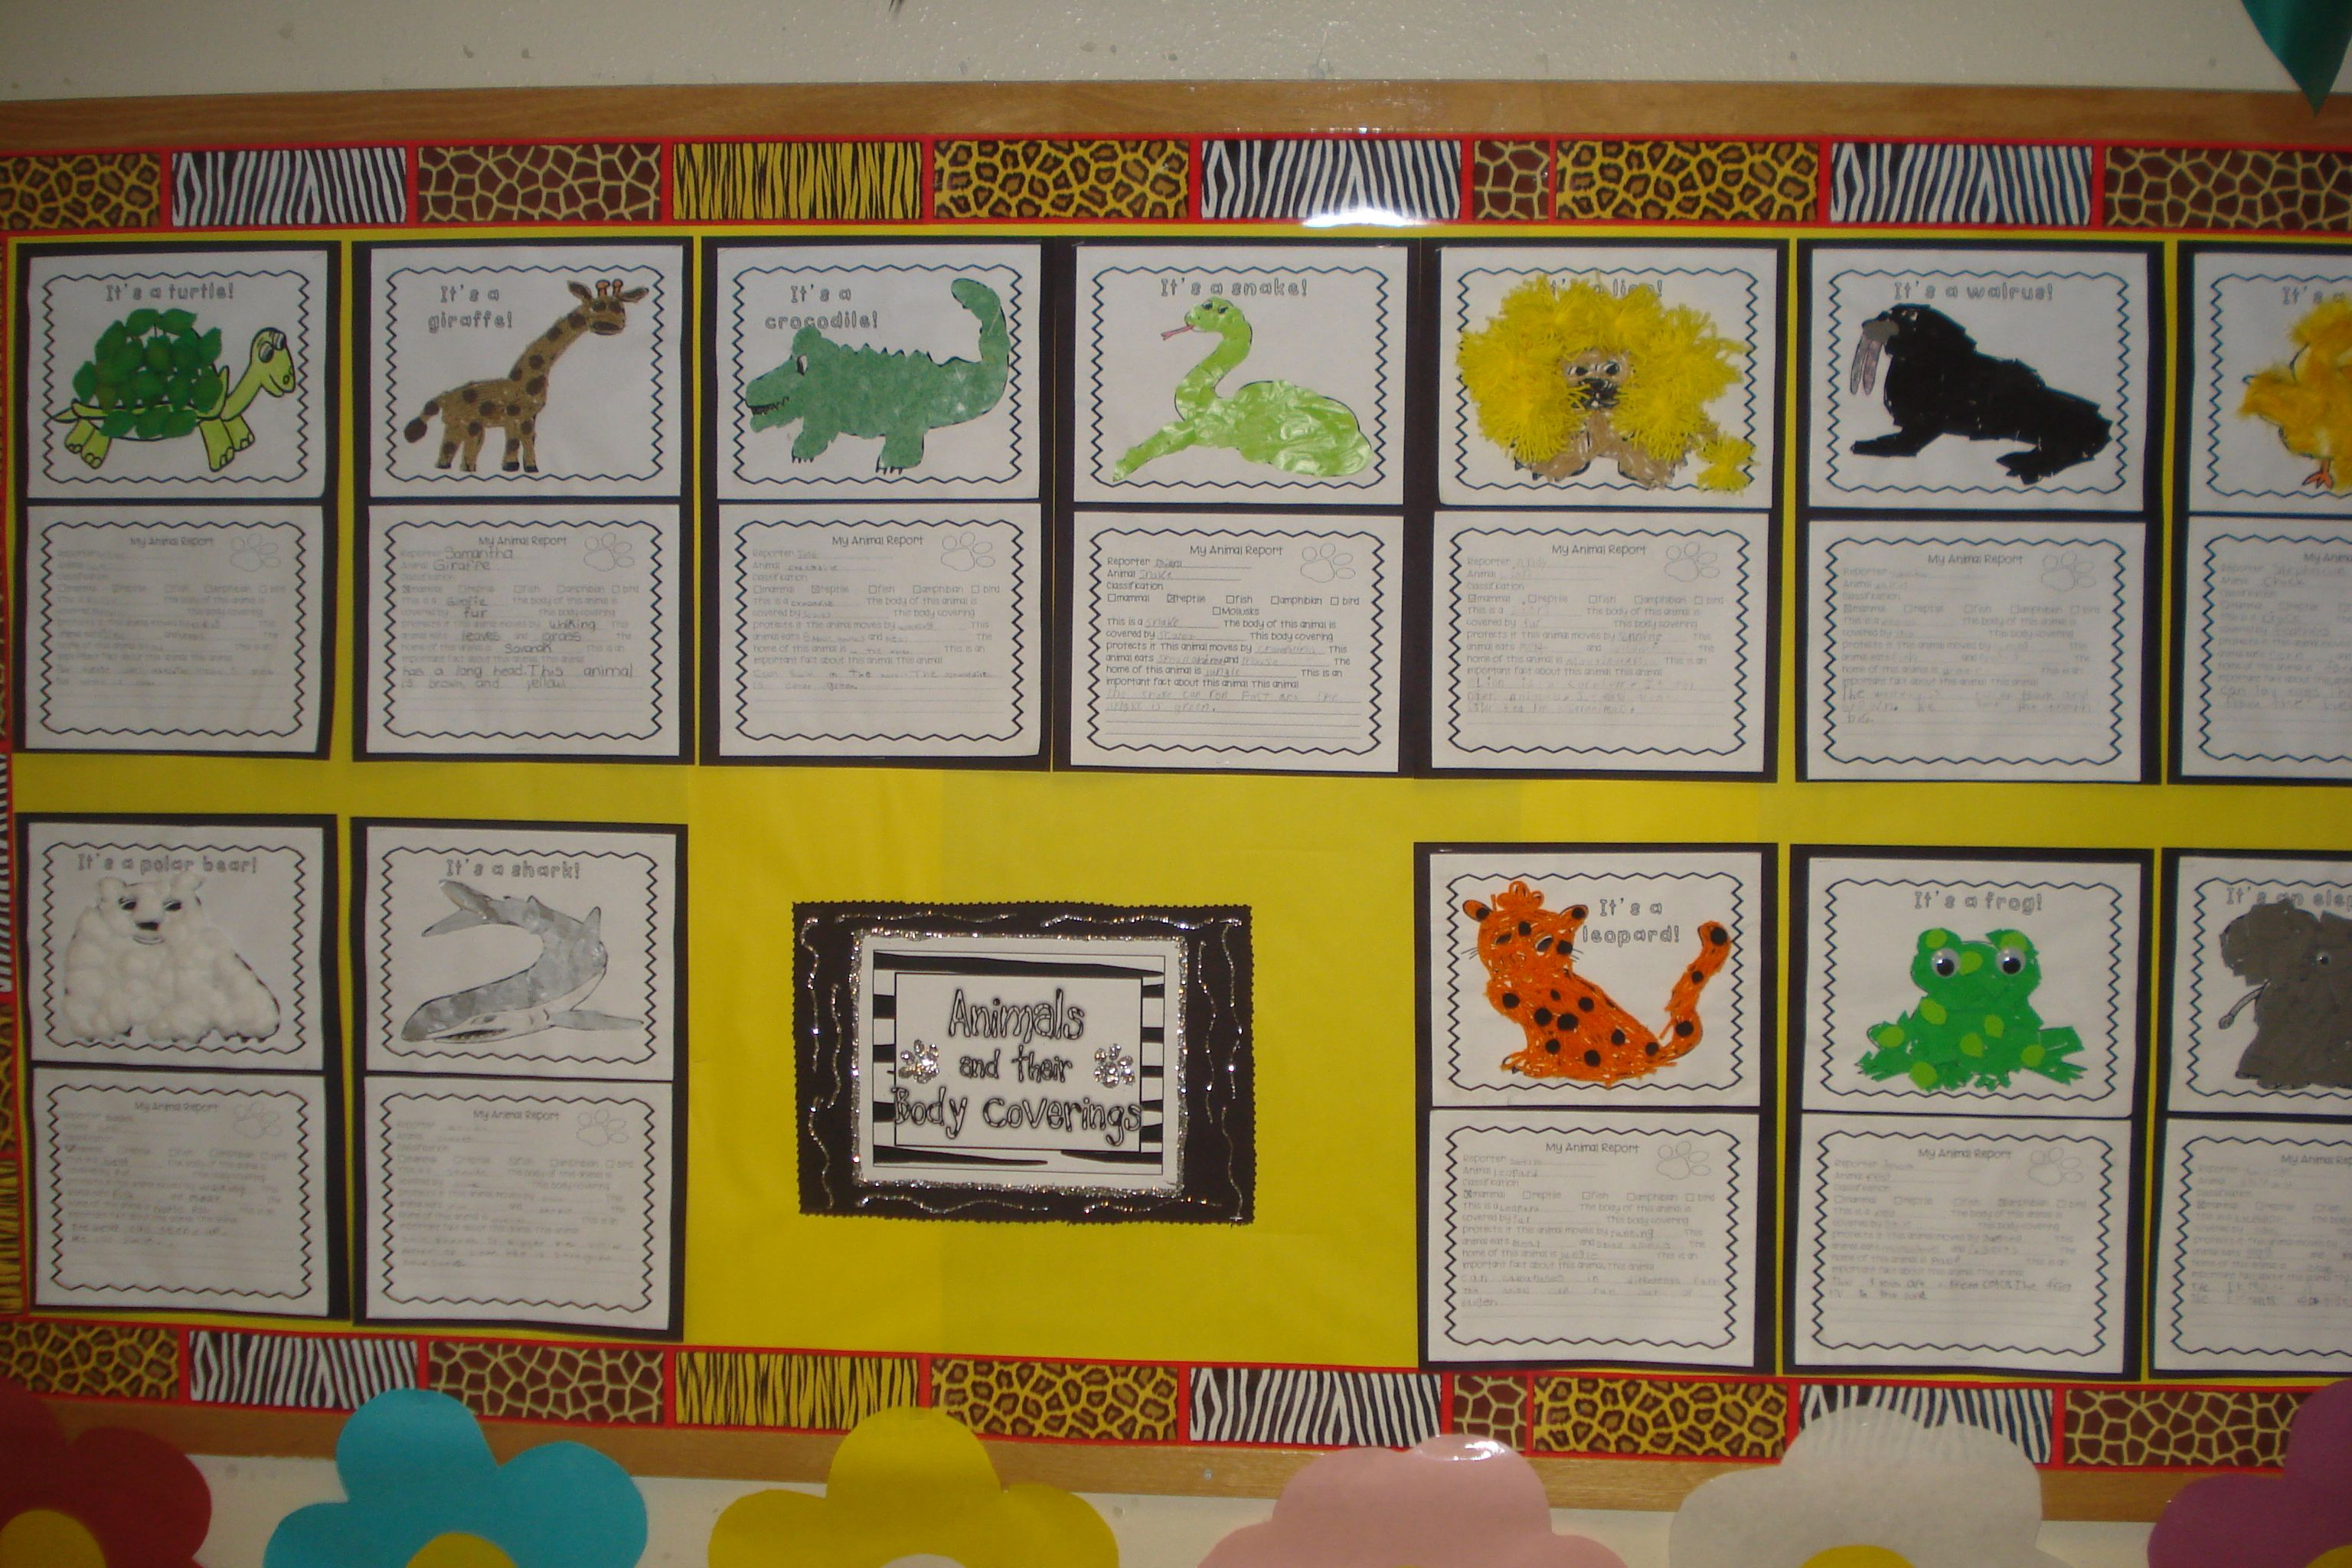 hight resolution of Bulletin Board about Body Coverings of Animals Created by Hildelisa Diaz  thebilingualcafe.com   Kindergarten worksheets